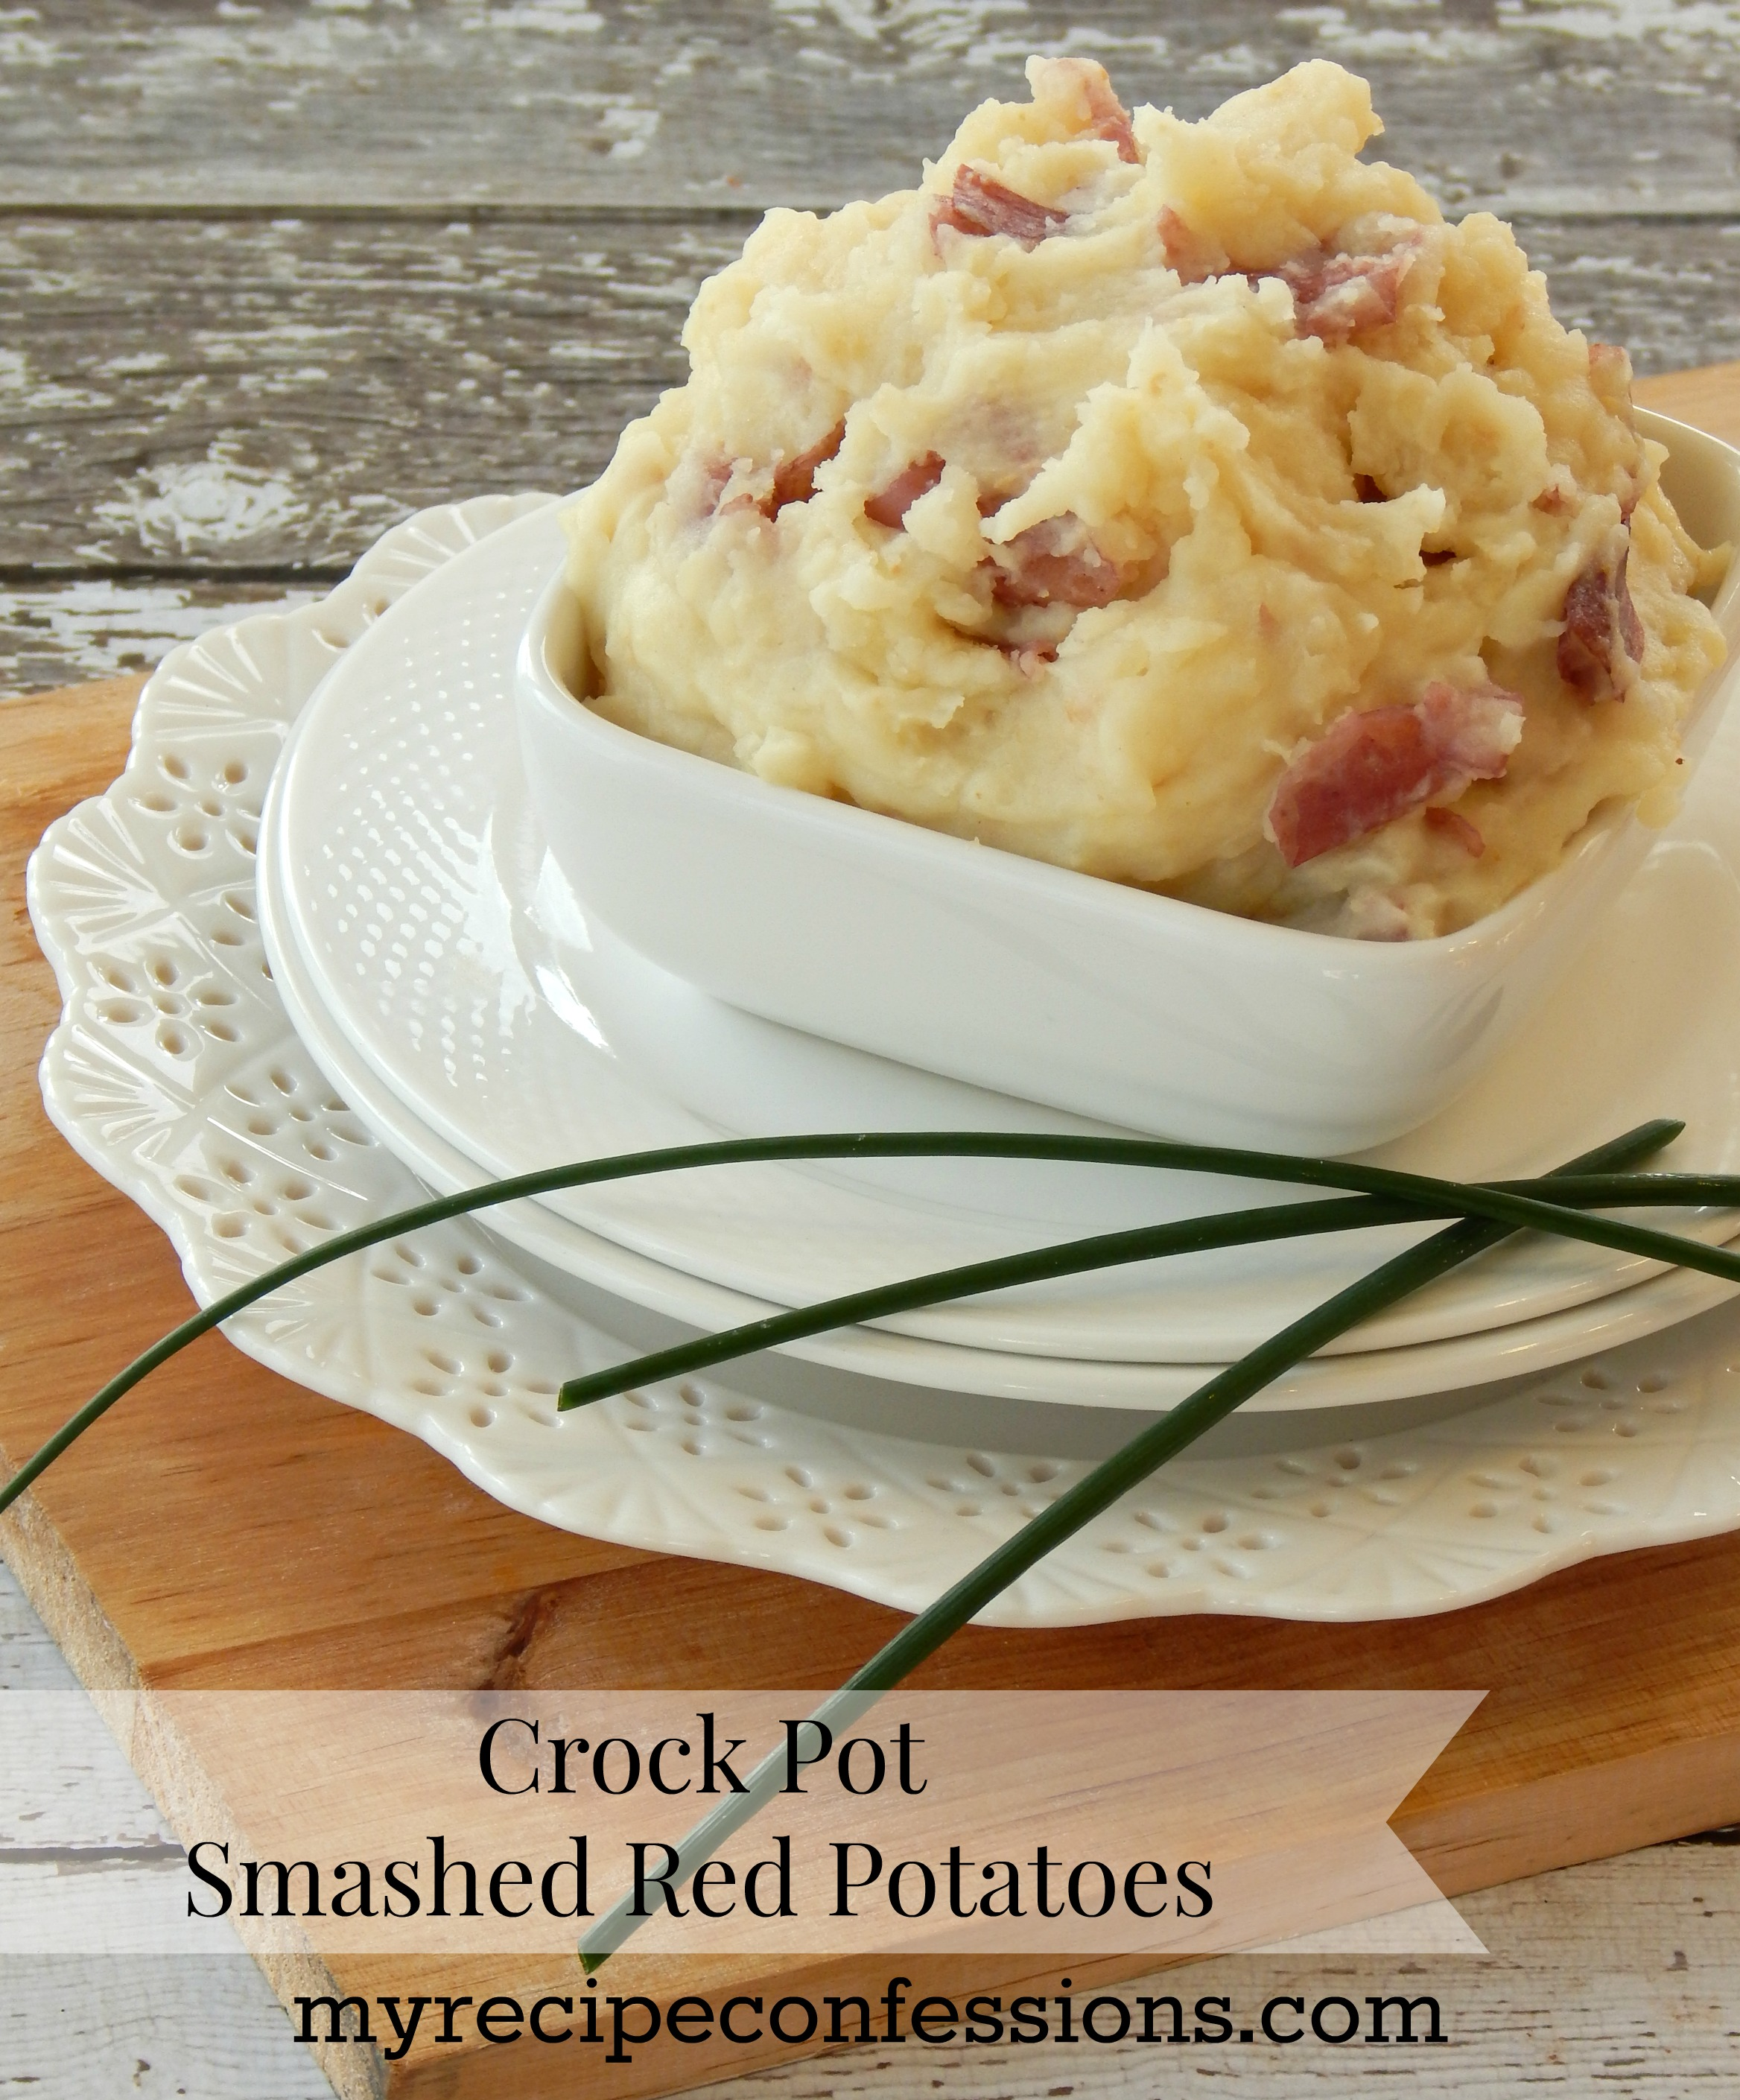 Crock Pot Smashed Red Potatoes